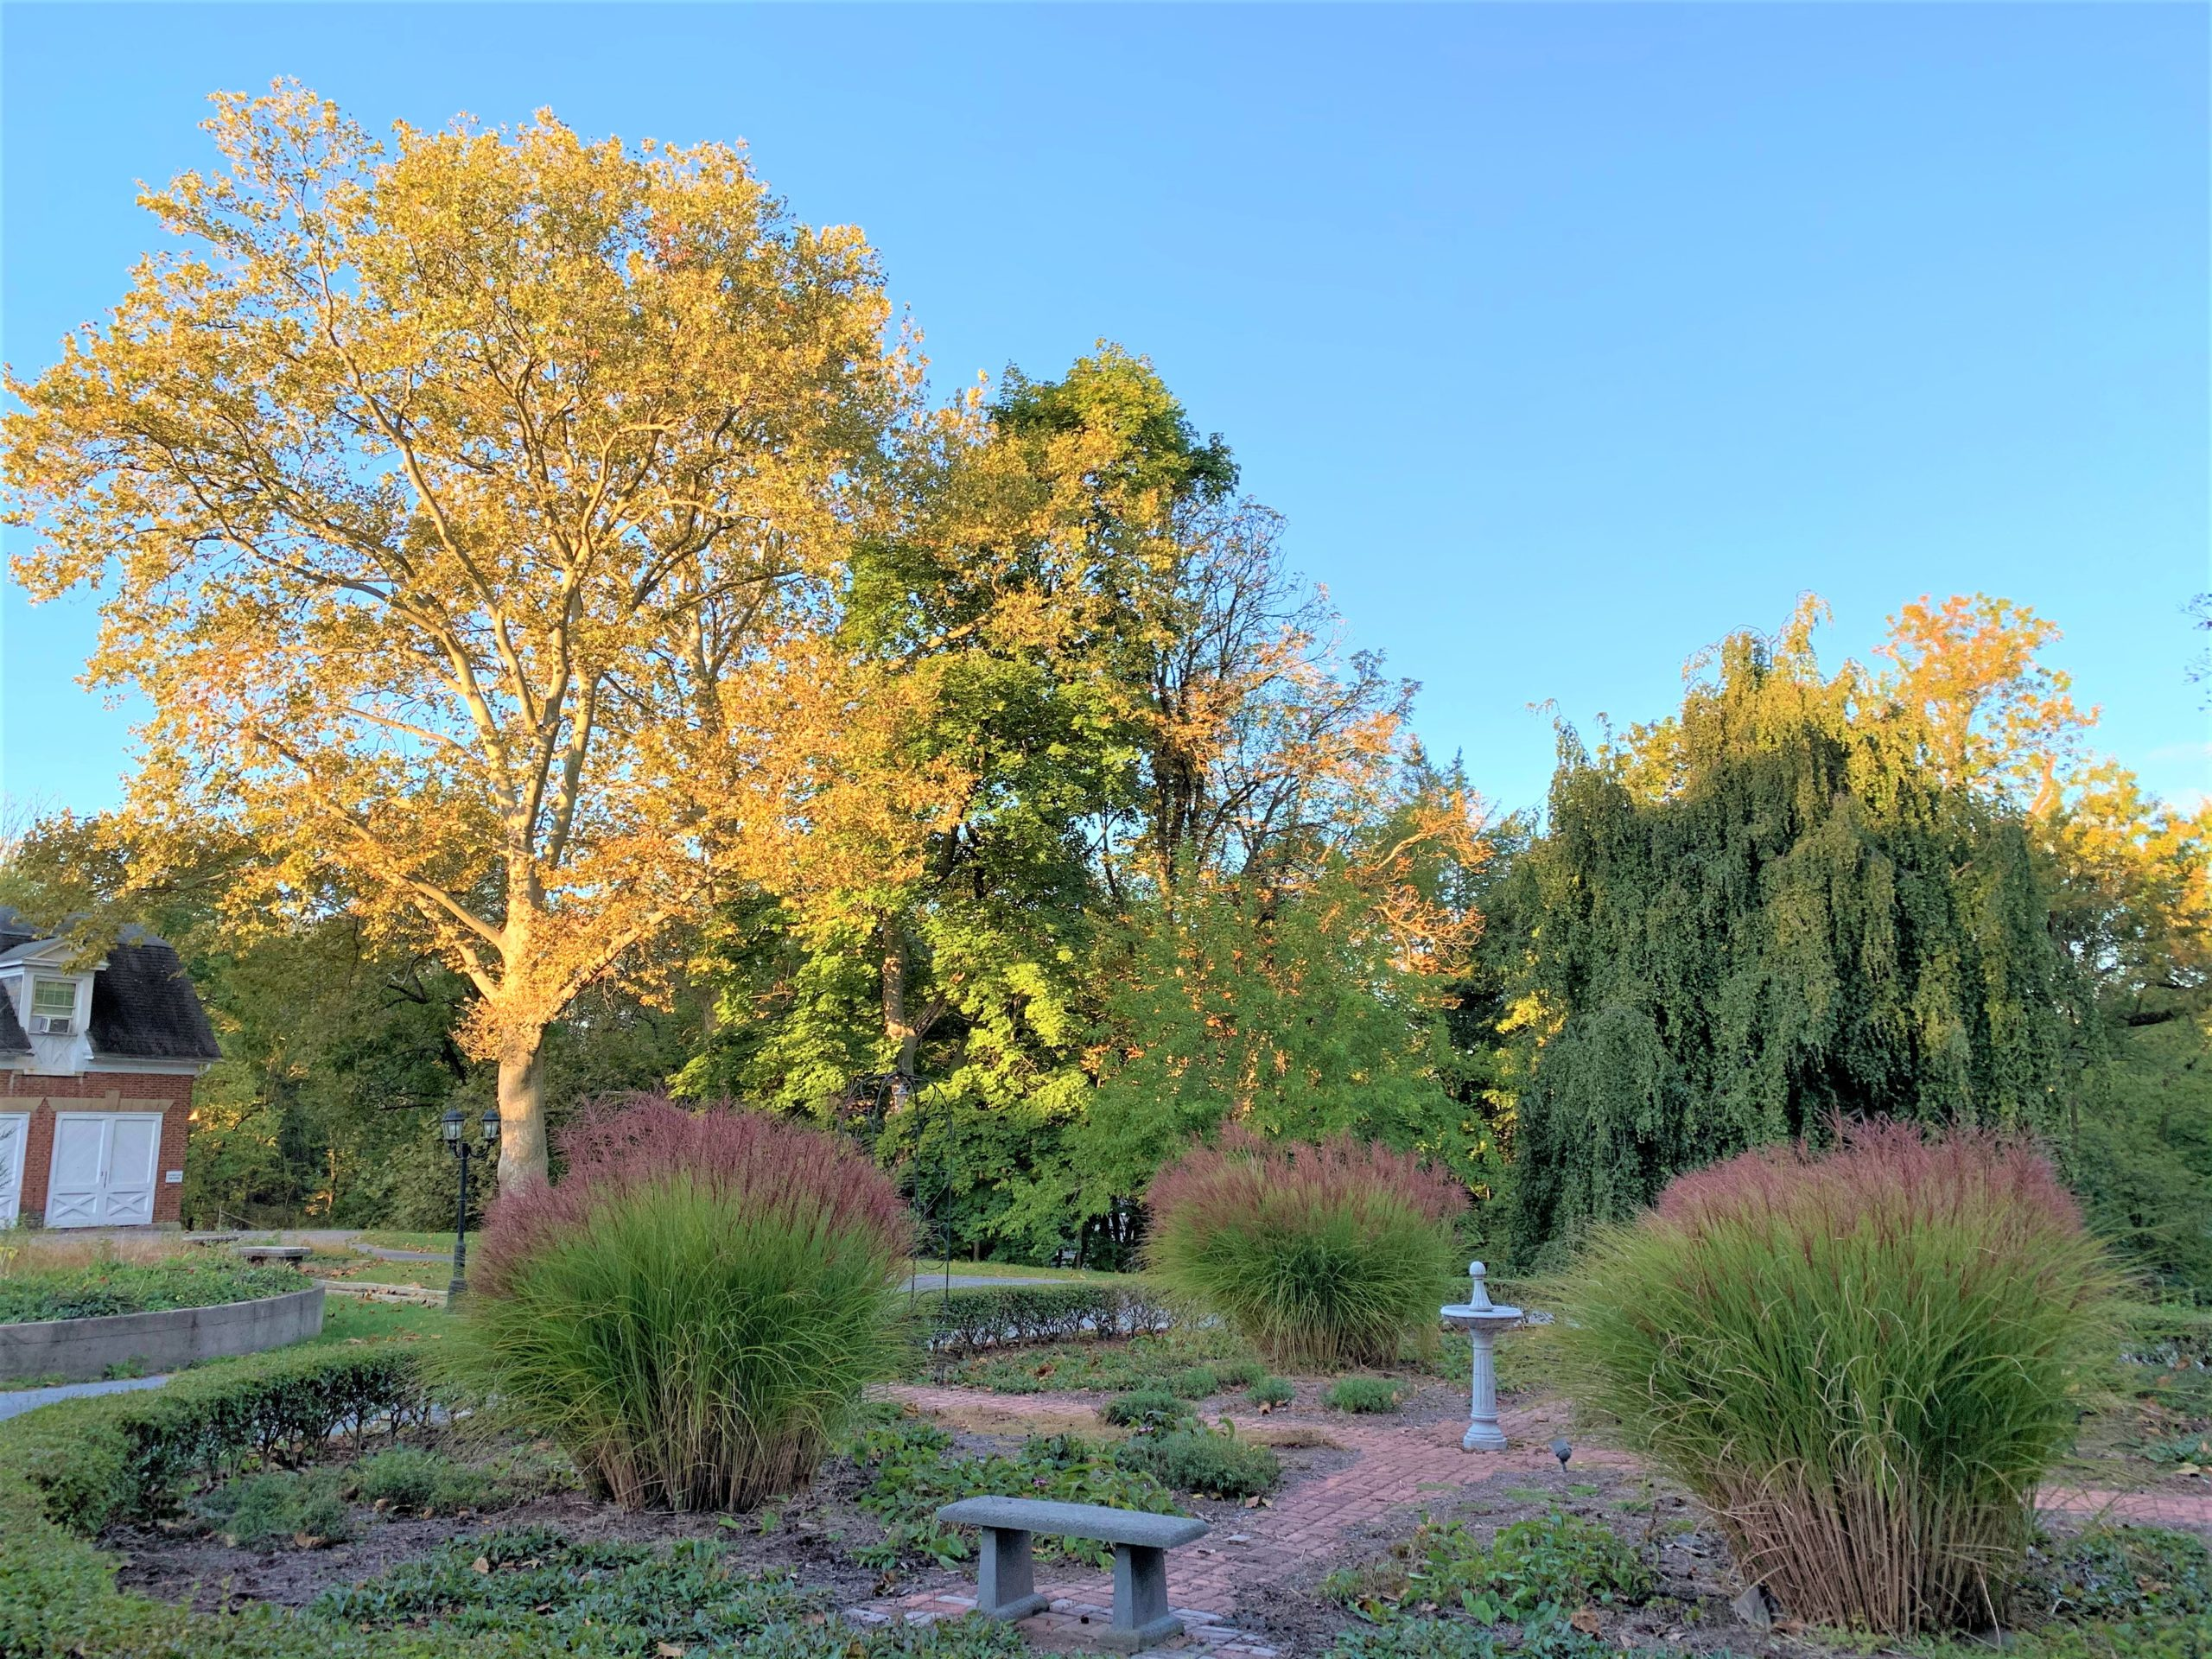 Fall Foliage in the garden area